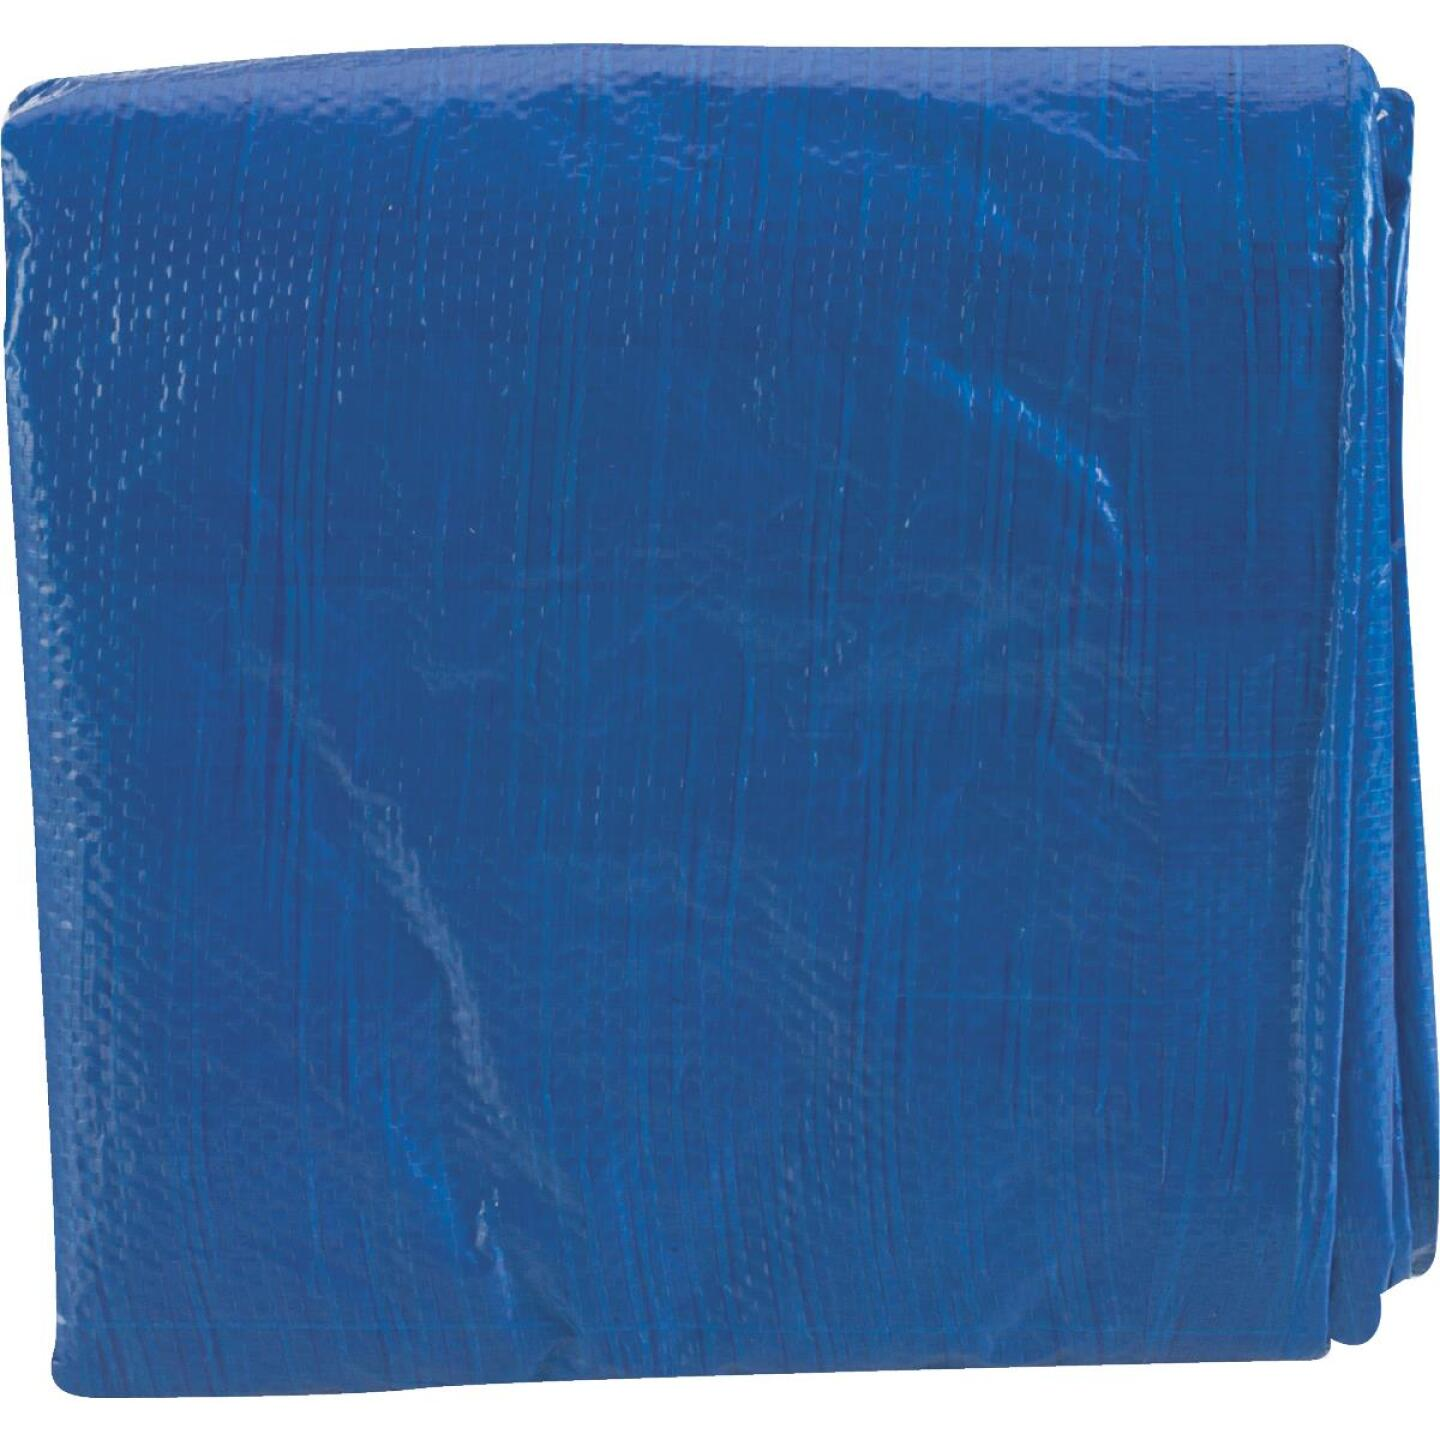 Do it Blue Woven 8 Ft. x 10 Ft. Medium Duty Poly Tarp Image 2